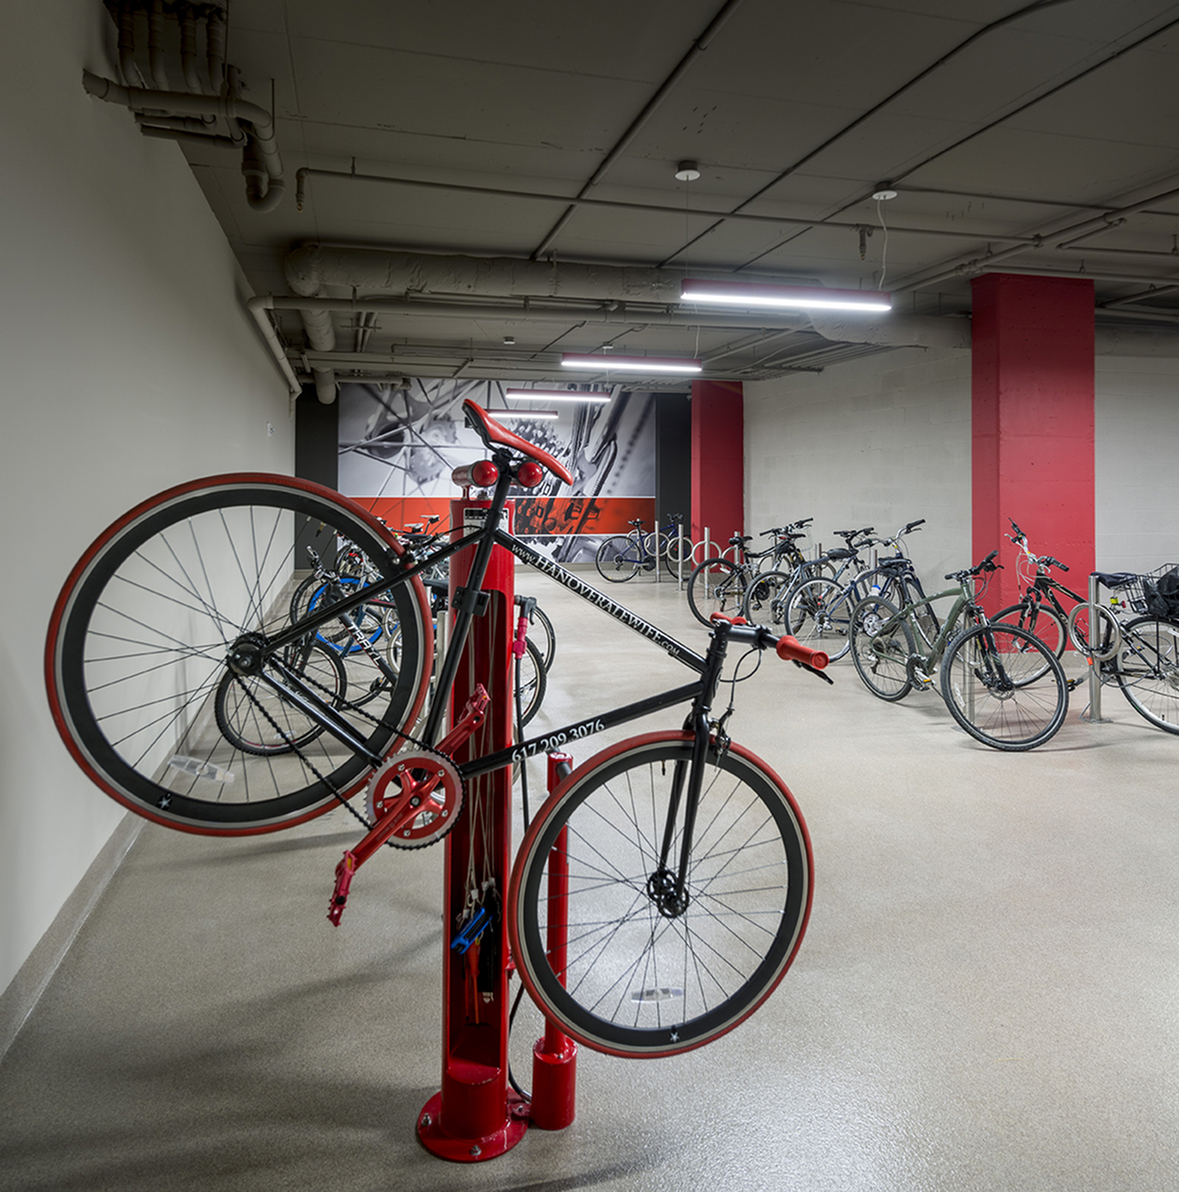 Designated bike storage room with fix-it station at Hanover Alewife